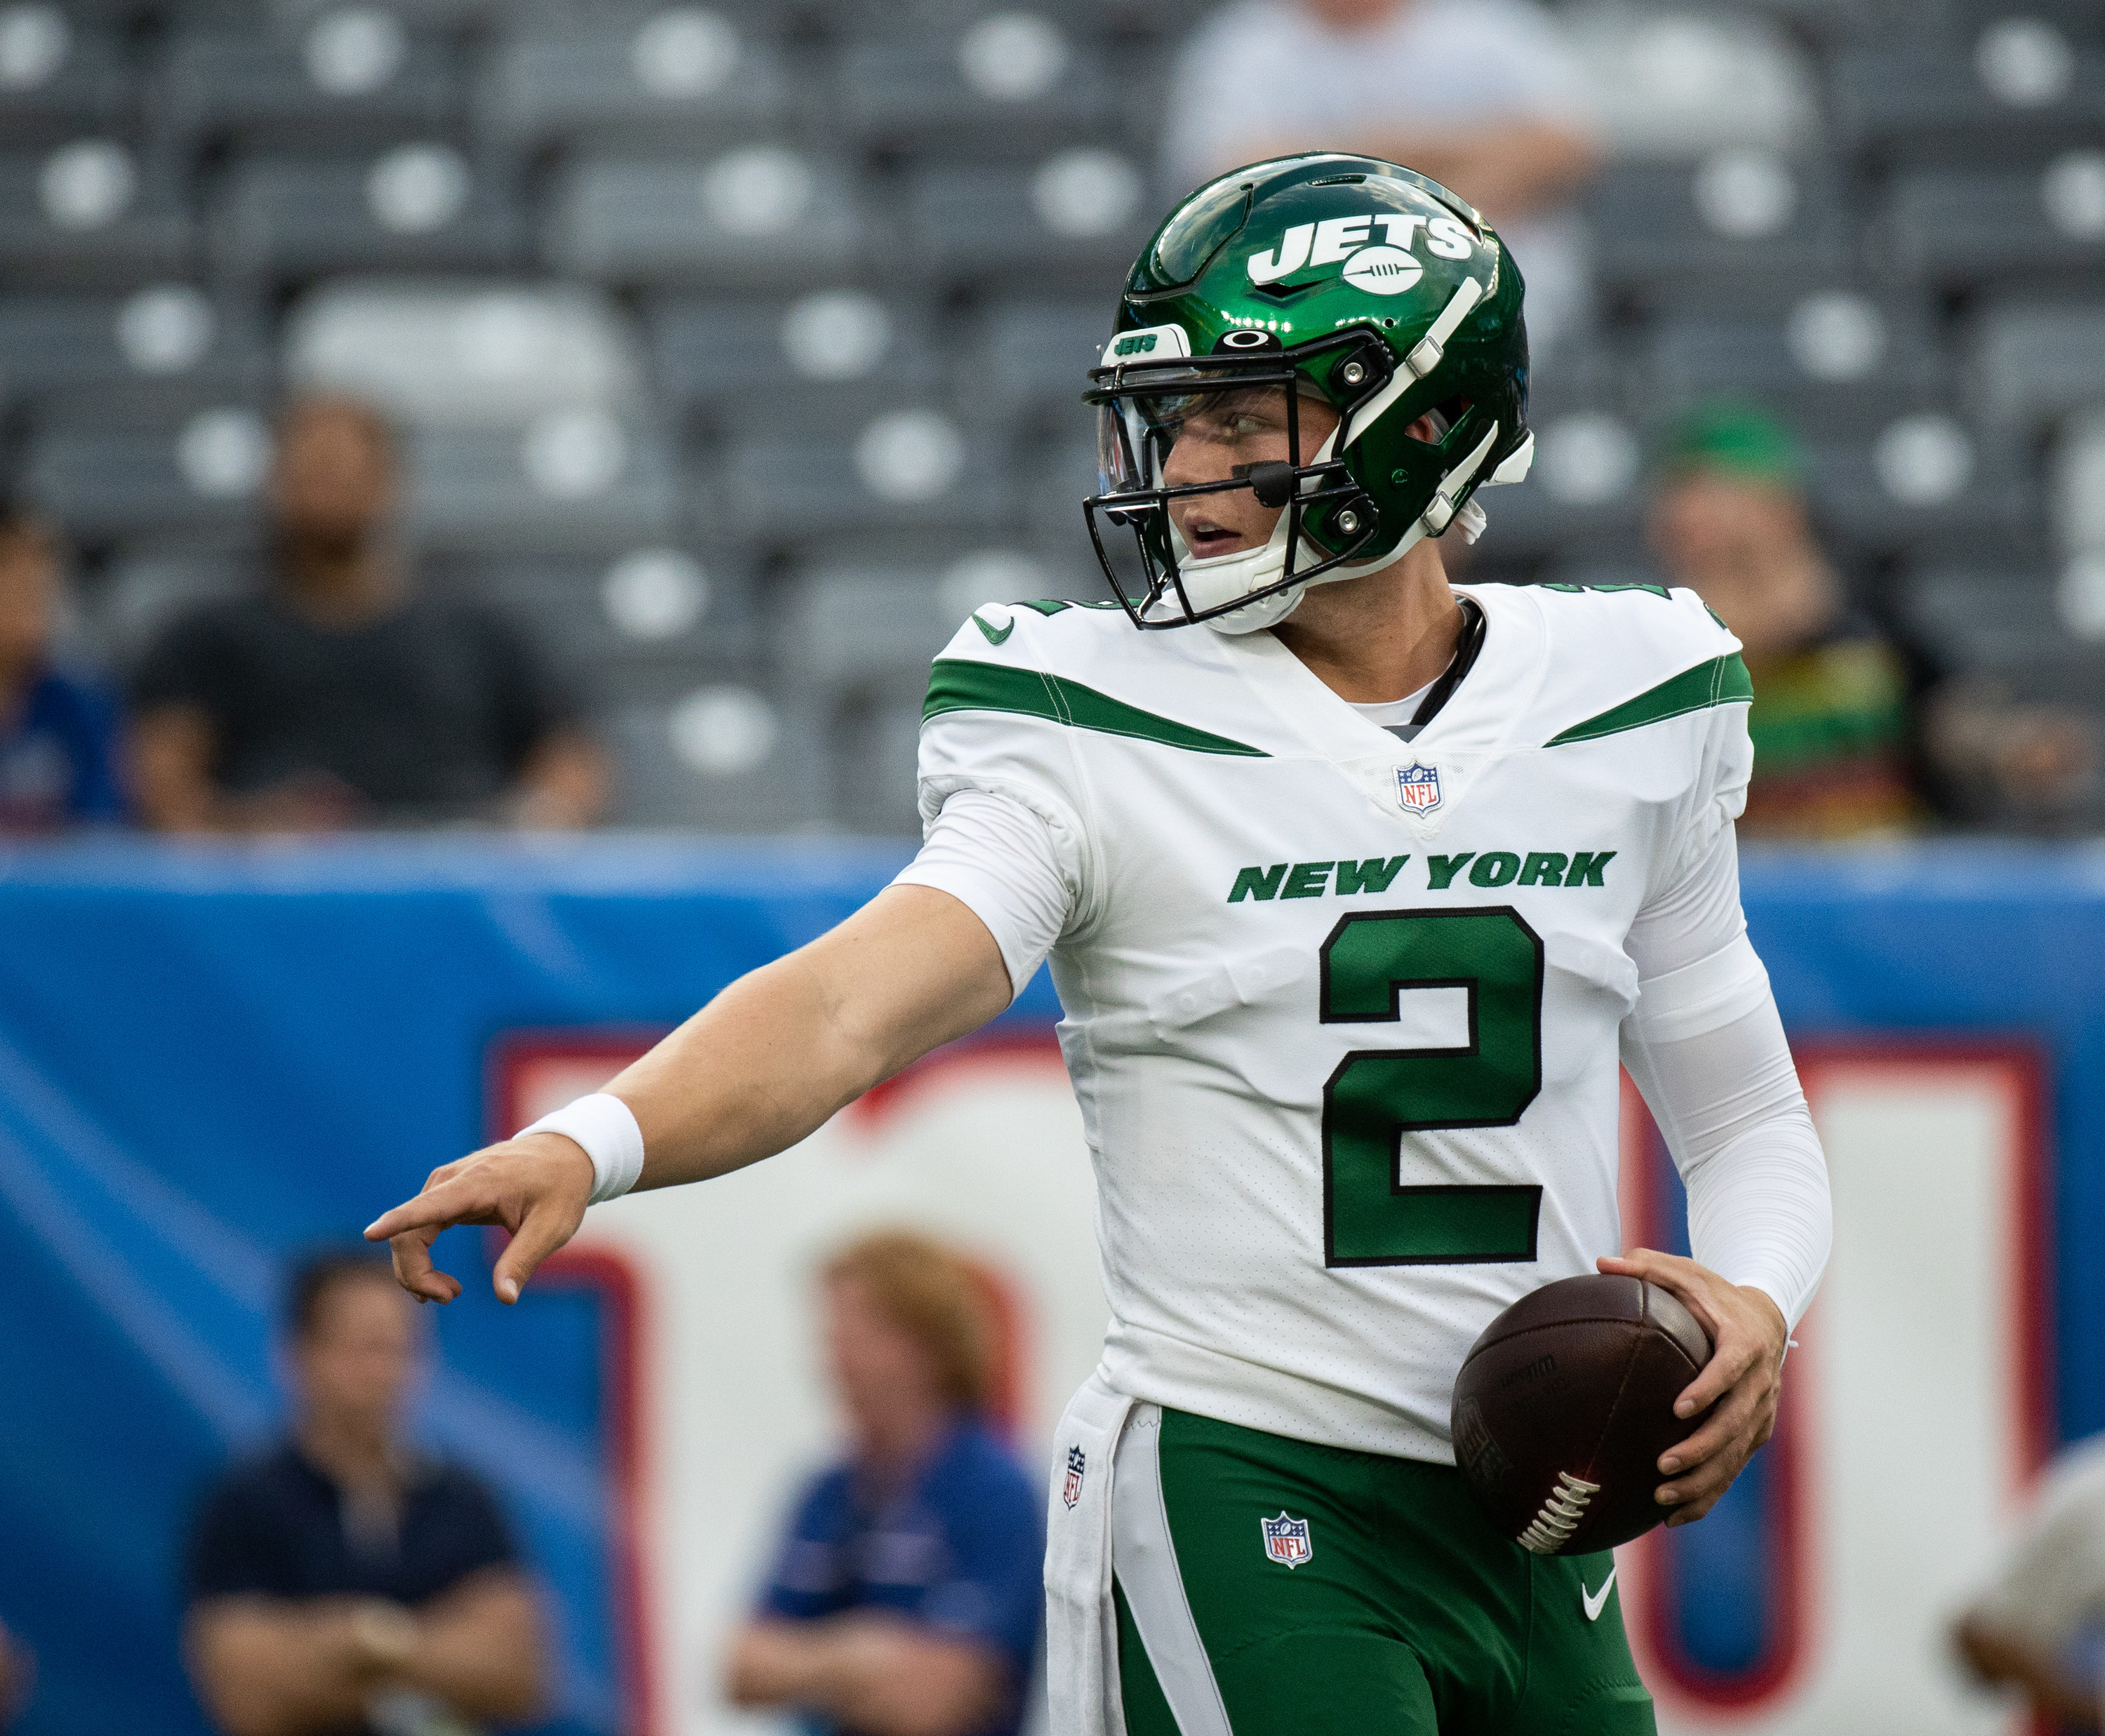 Jets white uniforms with green lettering and helmet